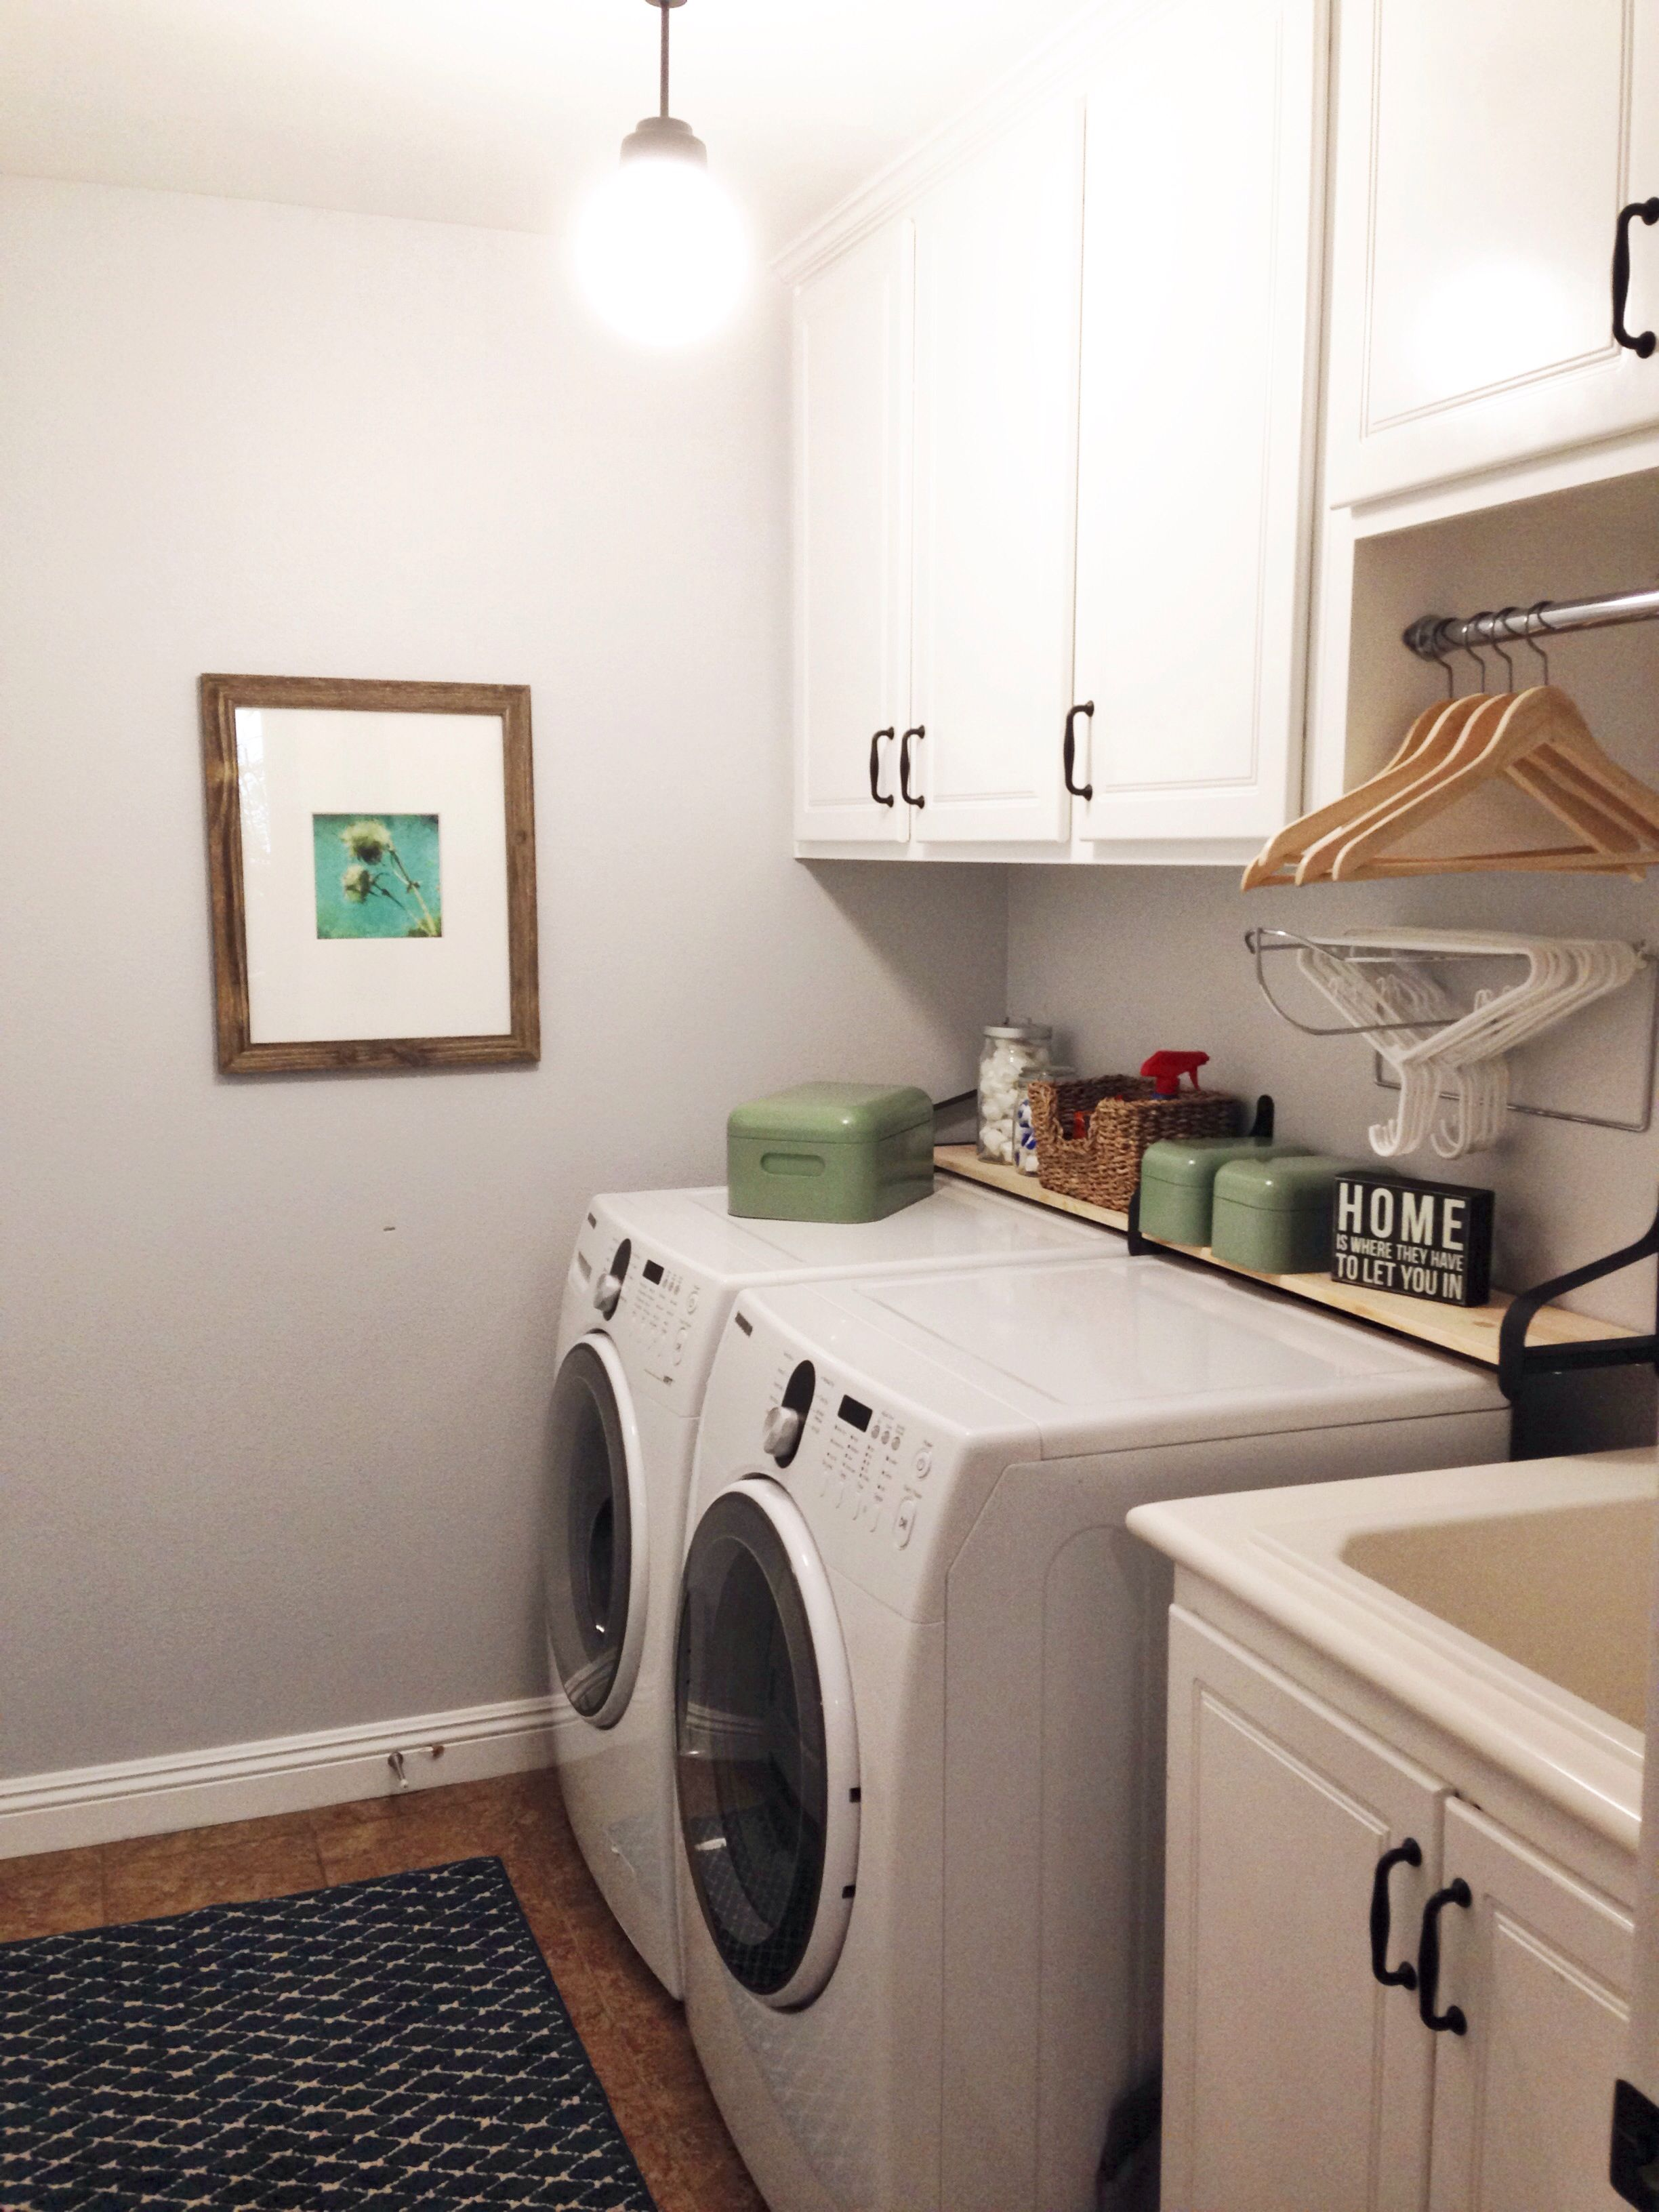 Small Laundry Room Sink : ... Washer And Dryer Laundry Room Ideas under Small Laundry Room Sink